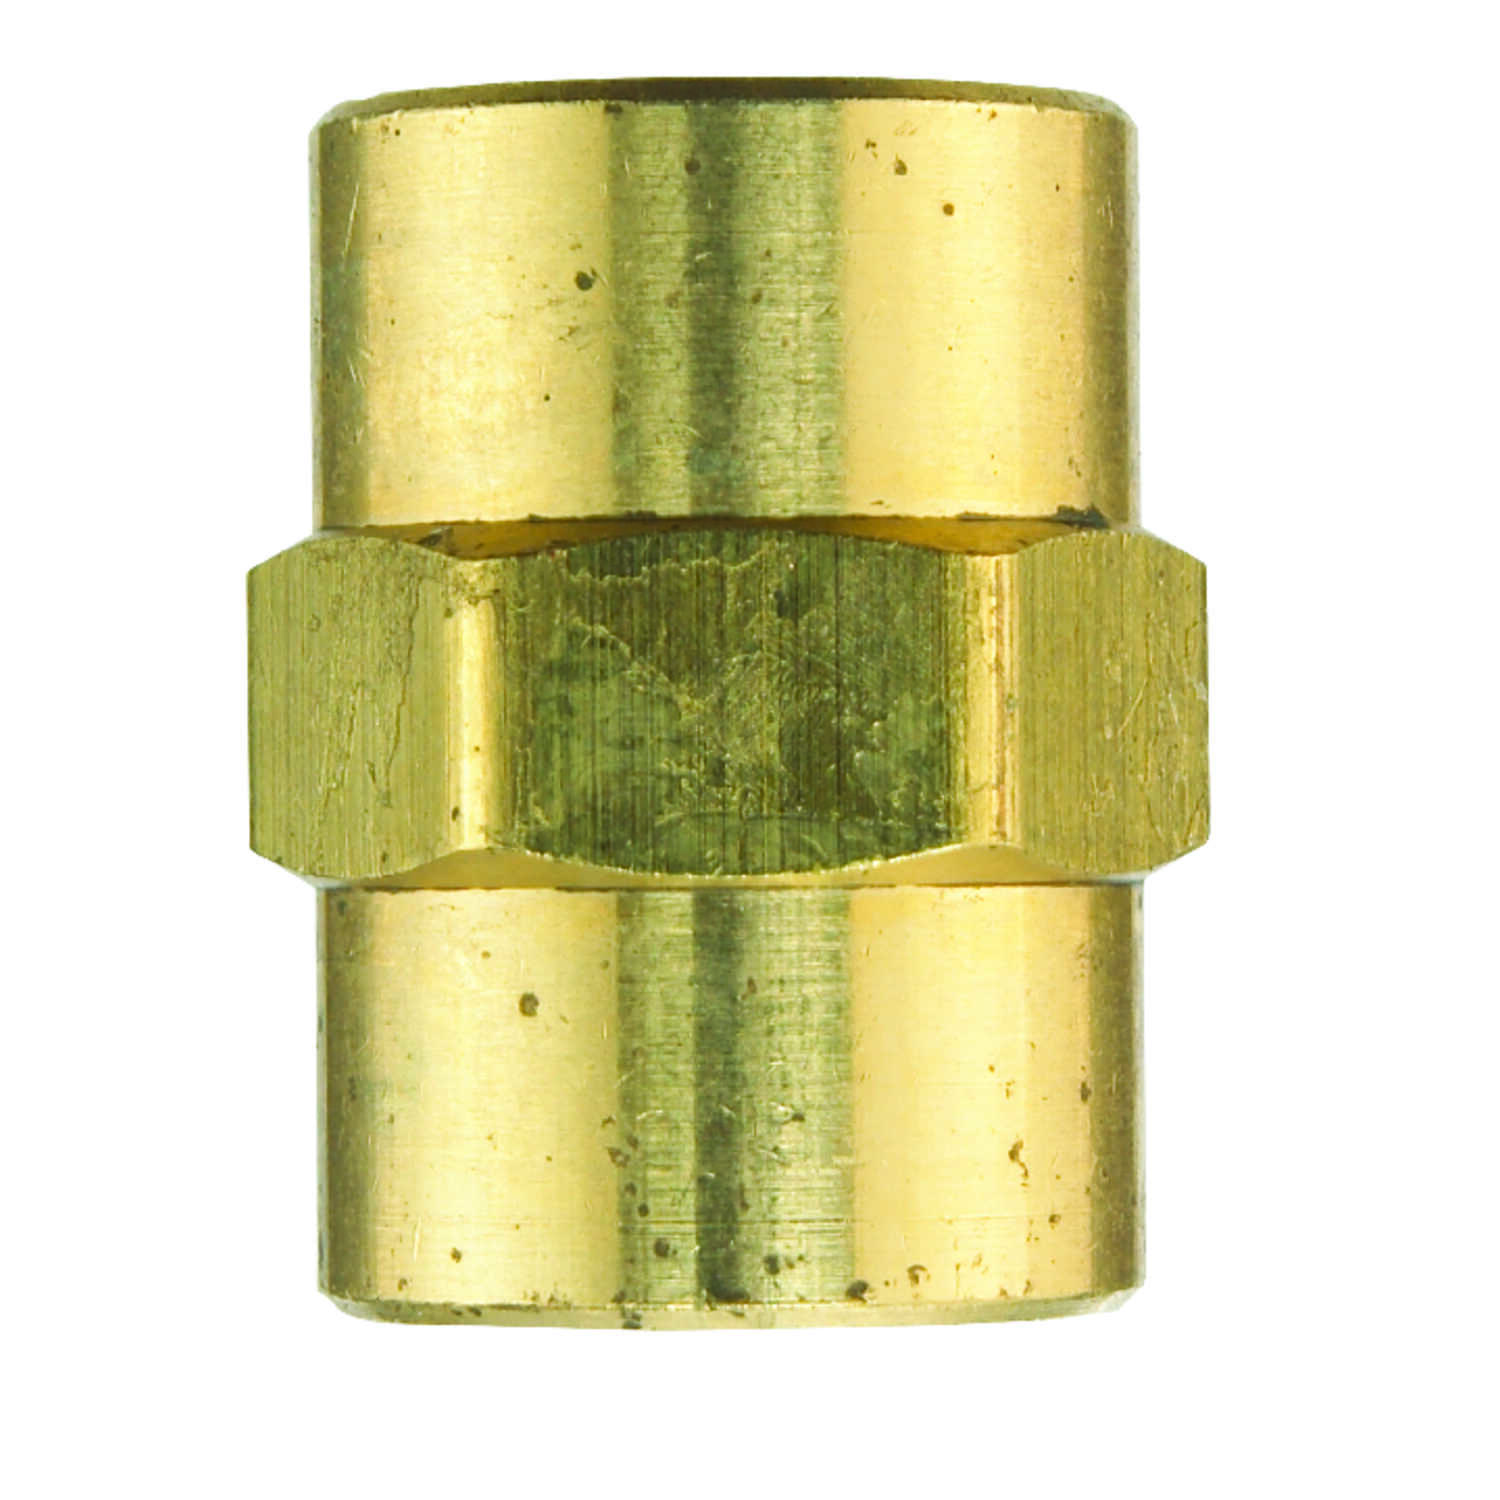 JMF  1/2 in. FPT   x 1/2 in. Dia. FPT  Yellow Brass  Coupling